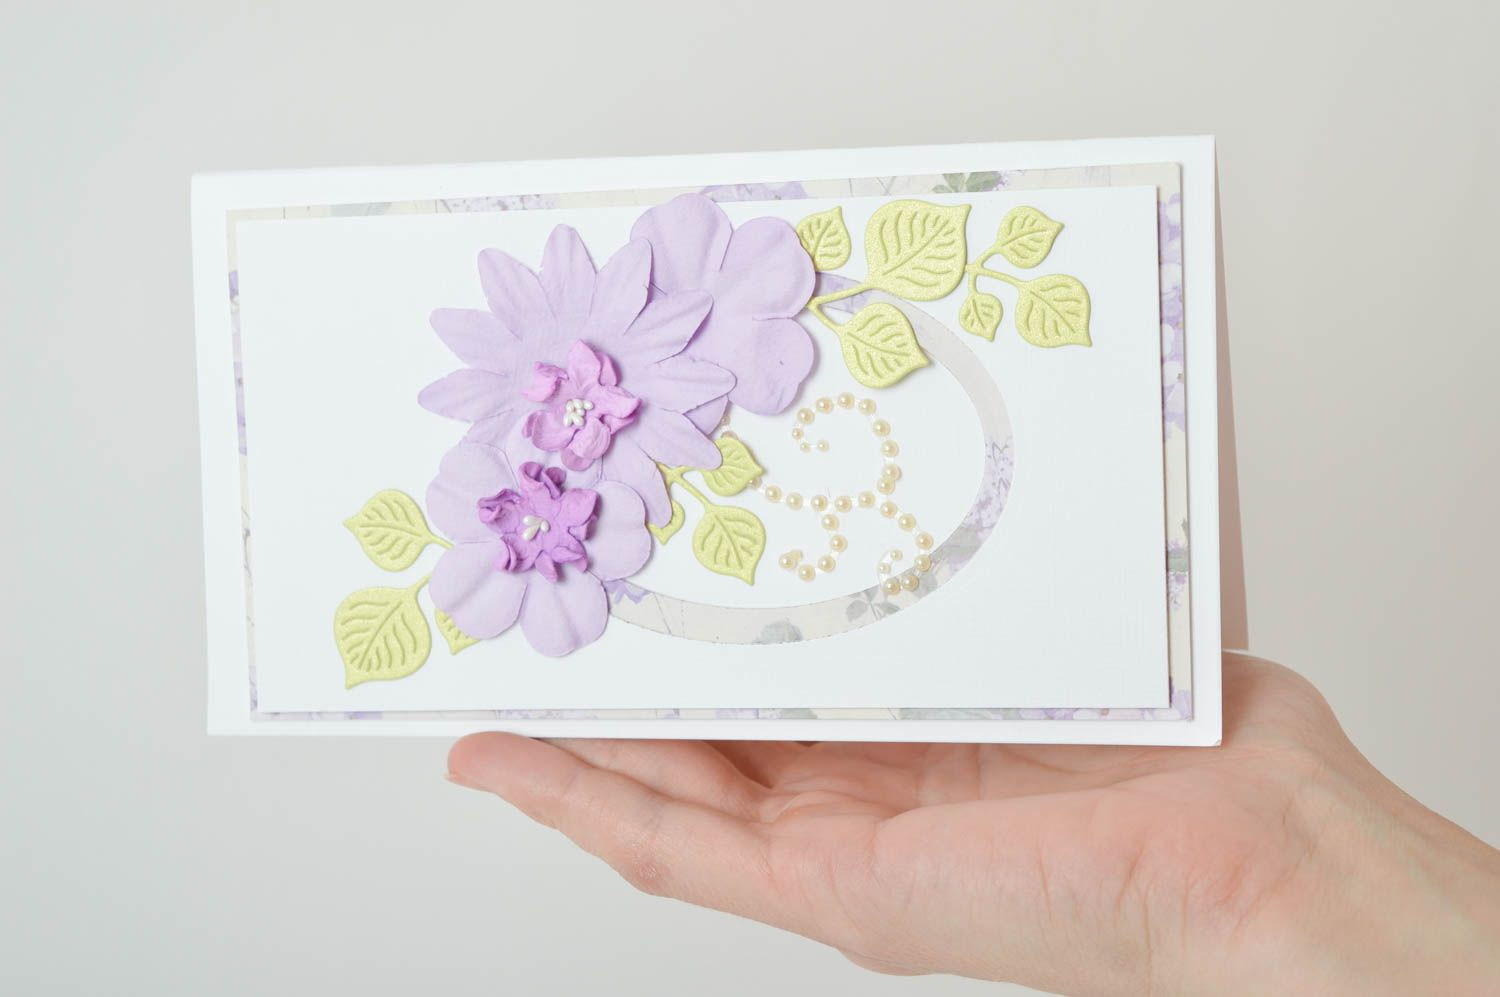 Handmade greeting card birthday card thank you card handmade gifts souvenir idea photo 5